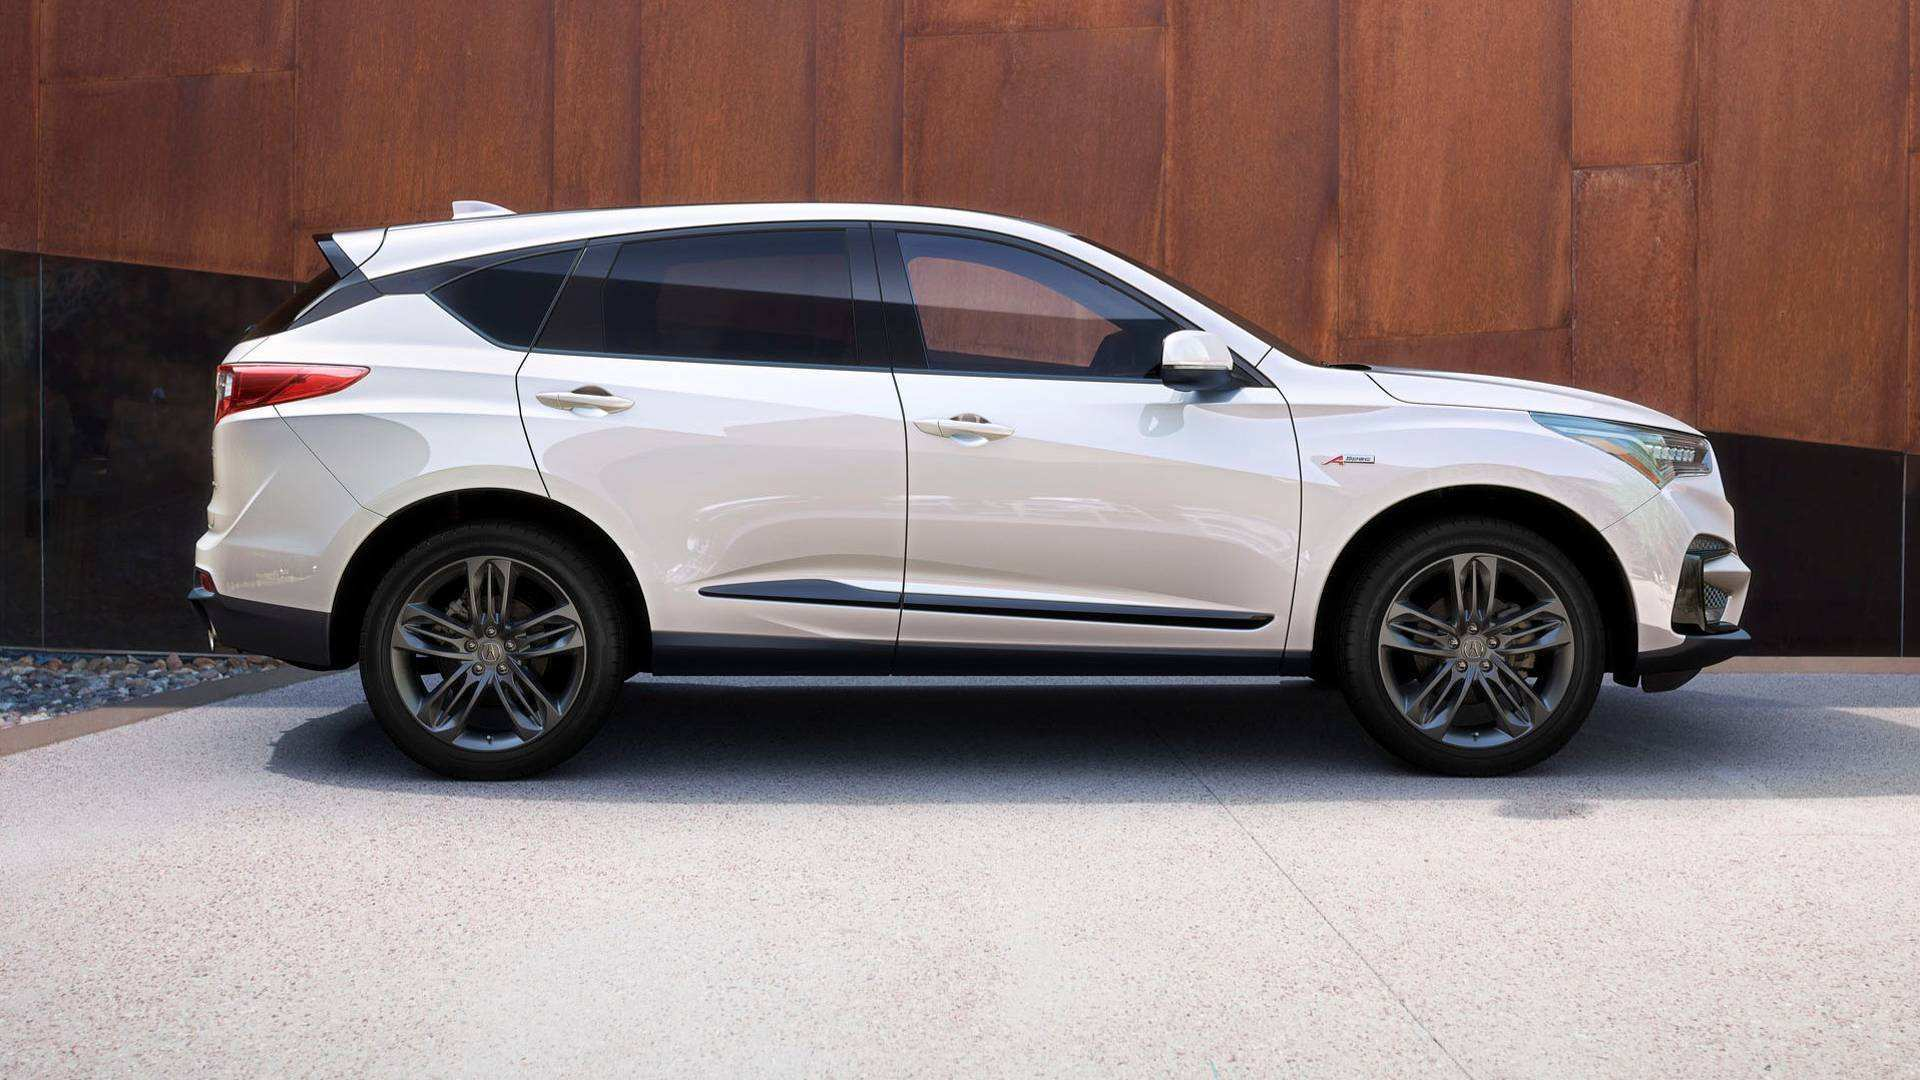 96 Great When Is The 2020 Acura Rdx Coming Out Configurations with When Is The 2020 Acura Rdx Coming Out